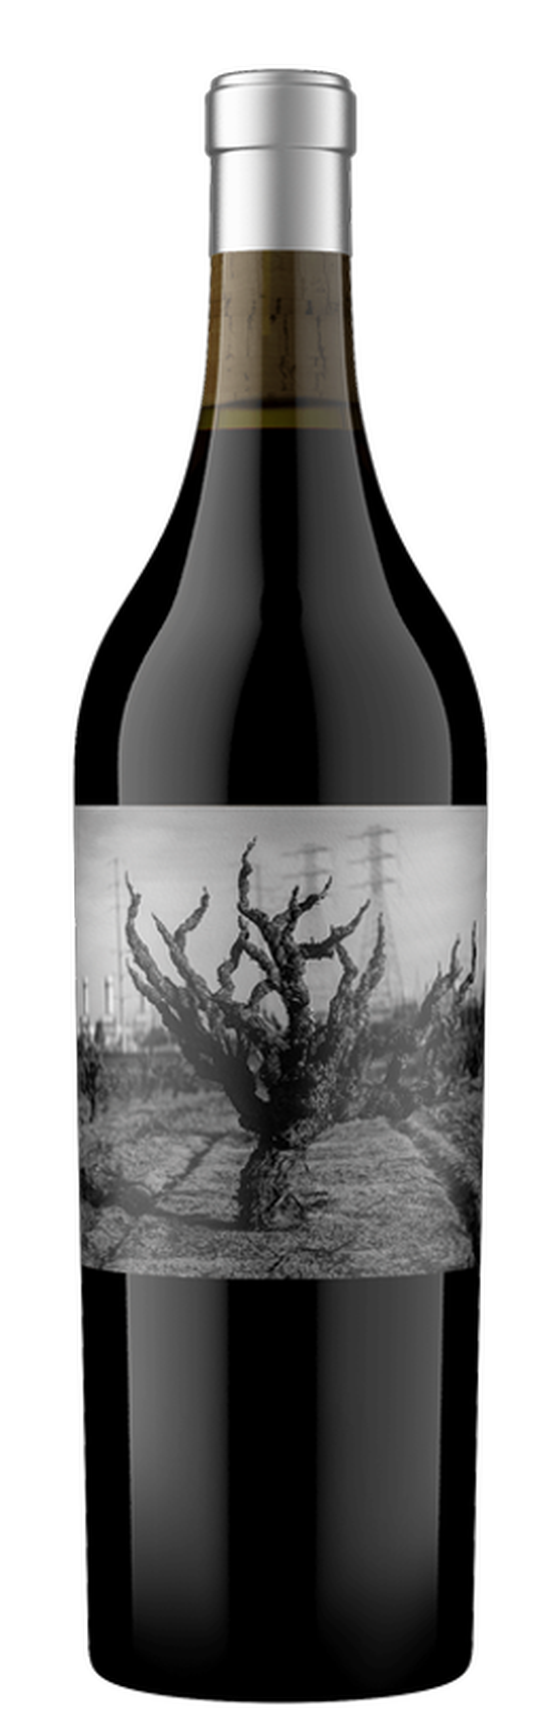 2018 Evangelho Vineyard Red Wine Blend, Contra Costa County